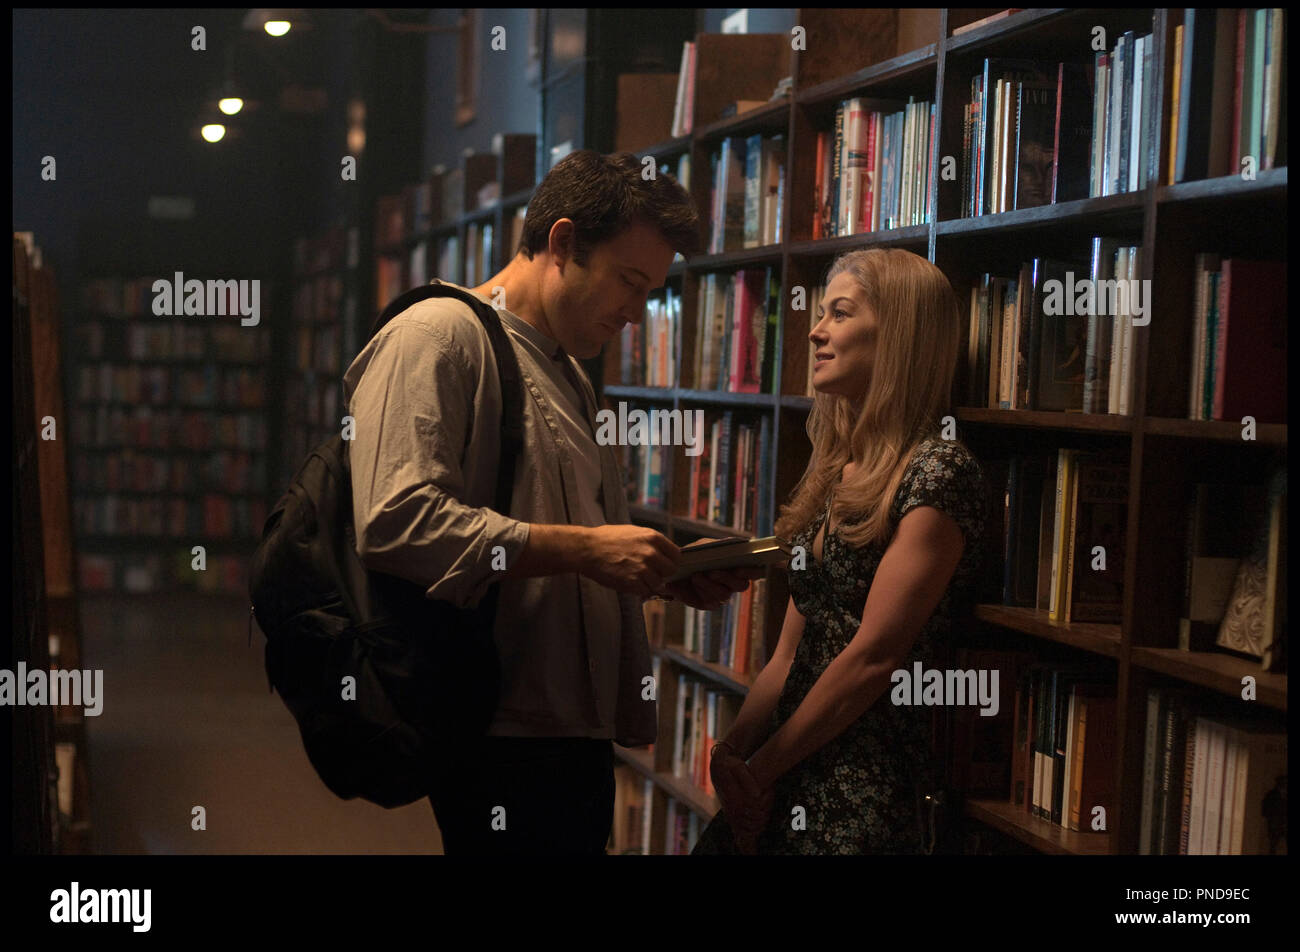 Prod DB © 20th Century Fox - New Regency Pictures - Pacific Standard / DR GONE GIRL de David Fincher 2014 USA avec Ben Affleck et Rosamund Pike bibliotheque d'apres le roman de Gillian Flynn - Stock Image